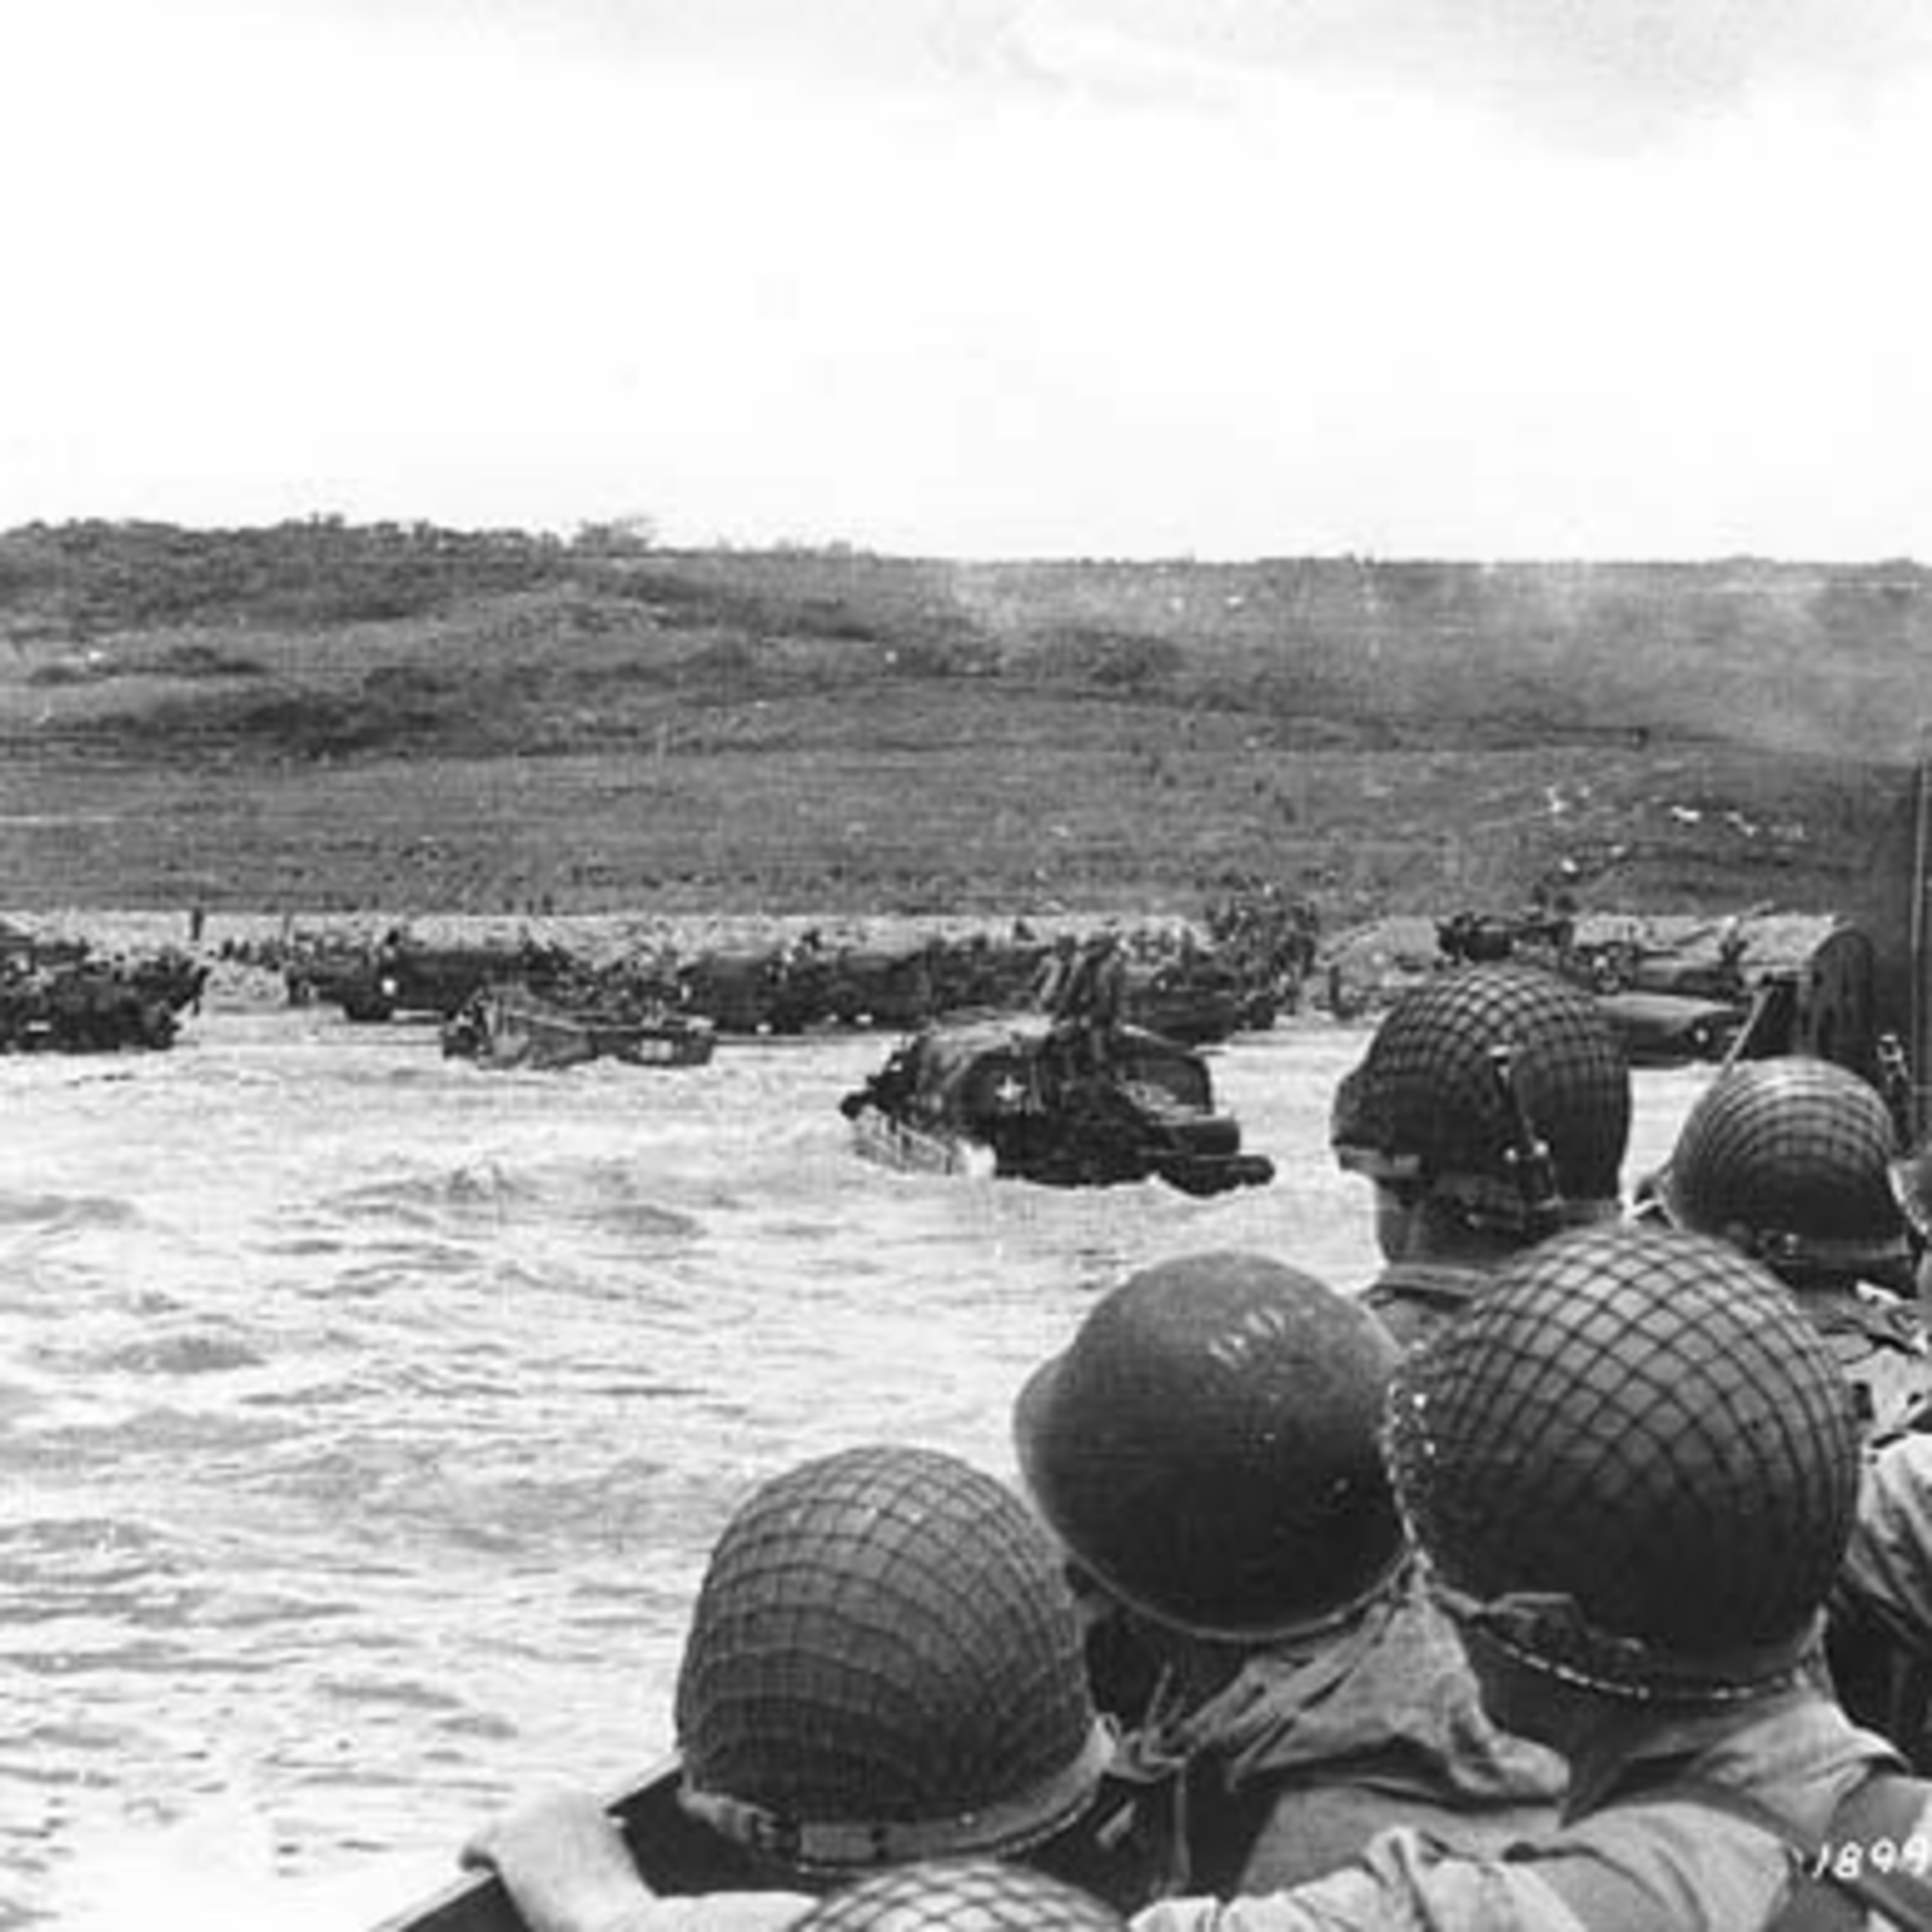 D-Day and Church Communications: with words from C.S. Lewis and memories of my Grandfather as they left England the morning of D-Day